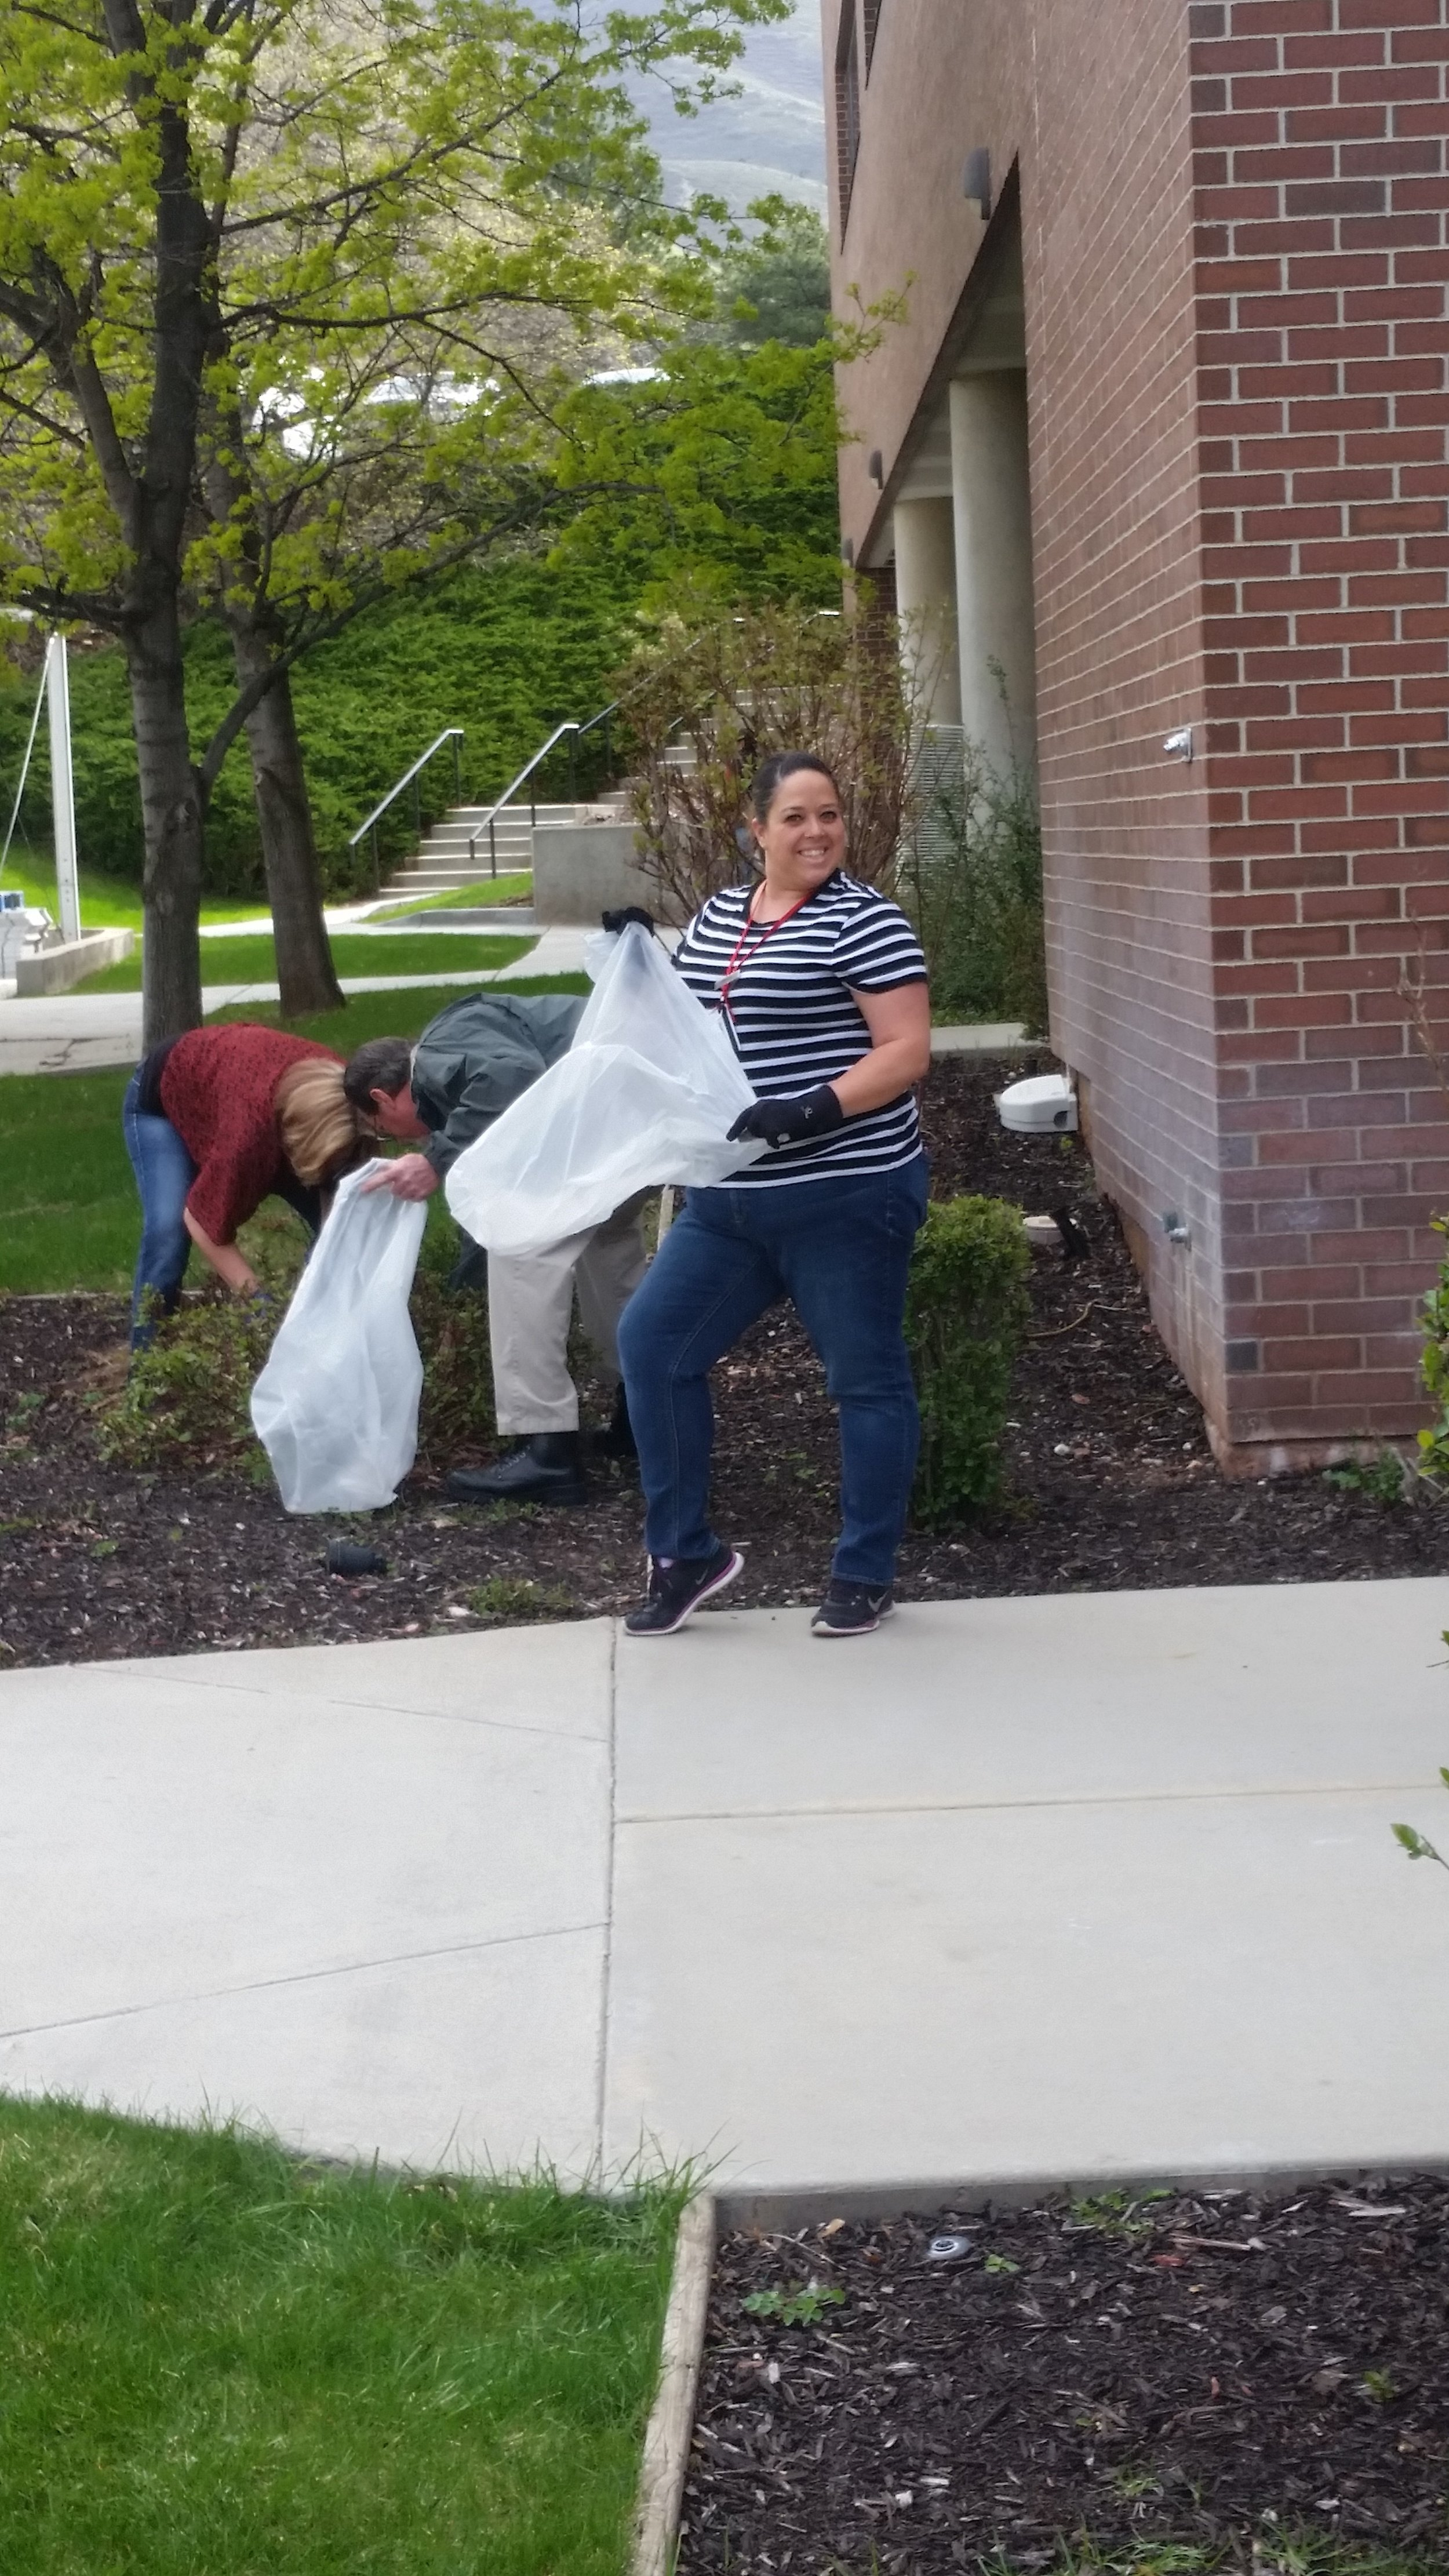 Housekeeping manager Jessica helping clean up trash on earth day.